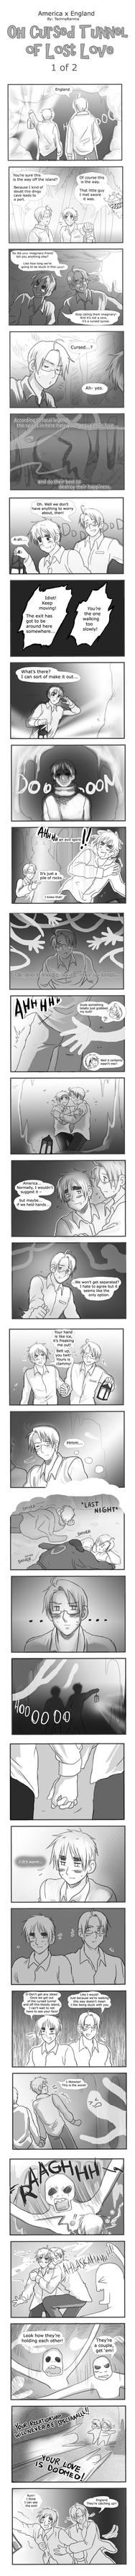 USUK - Tunnel of Lost Love pg1 by TechnoRanma